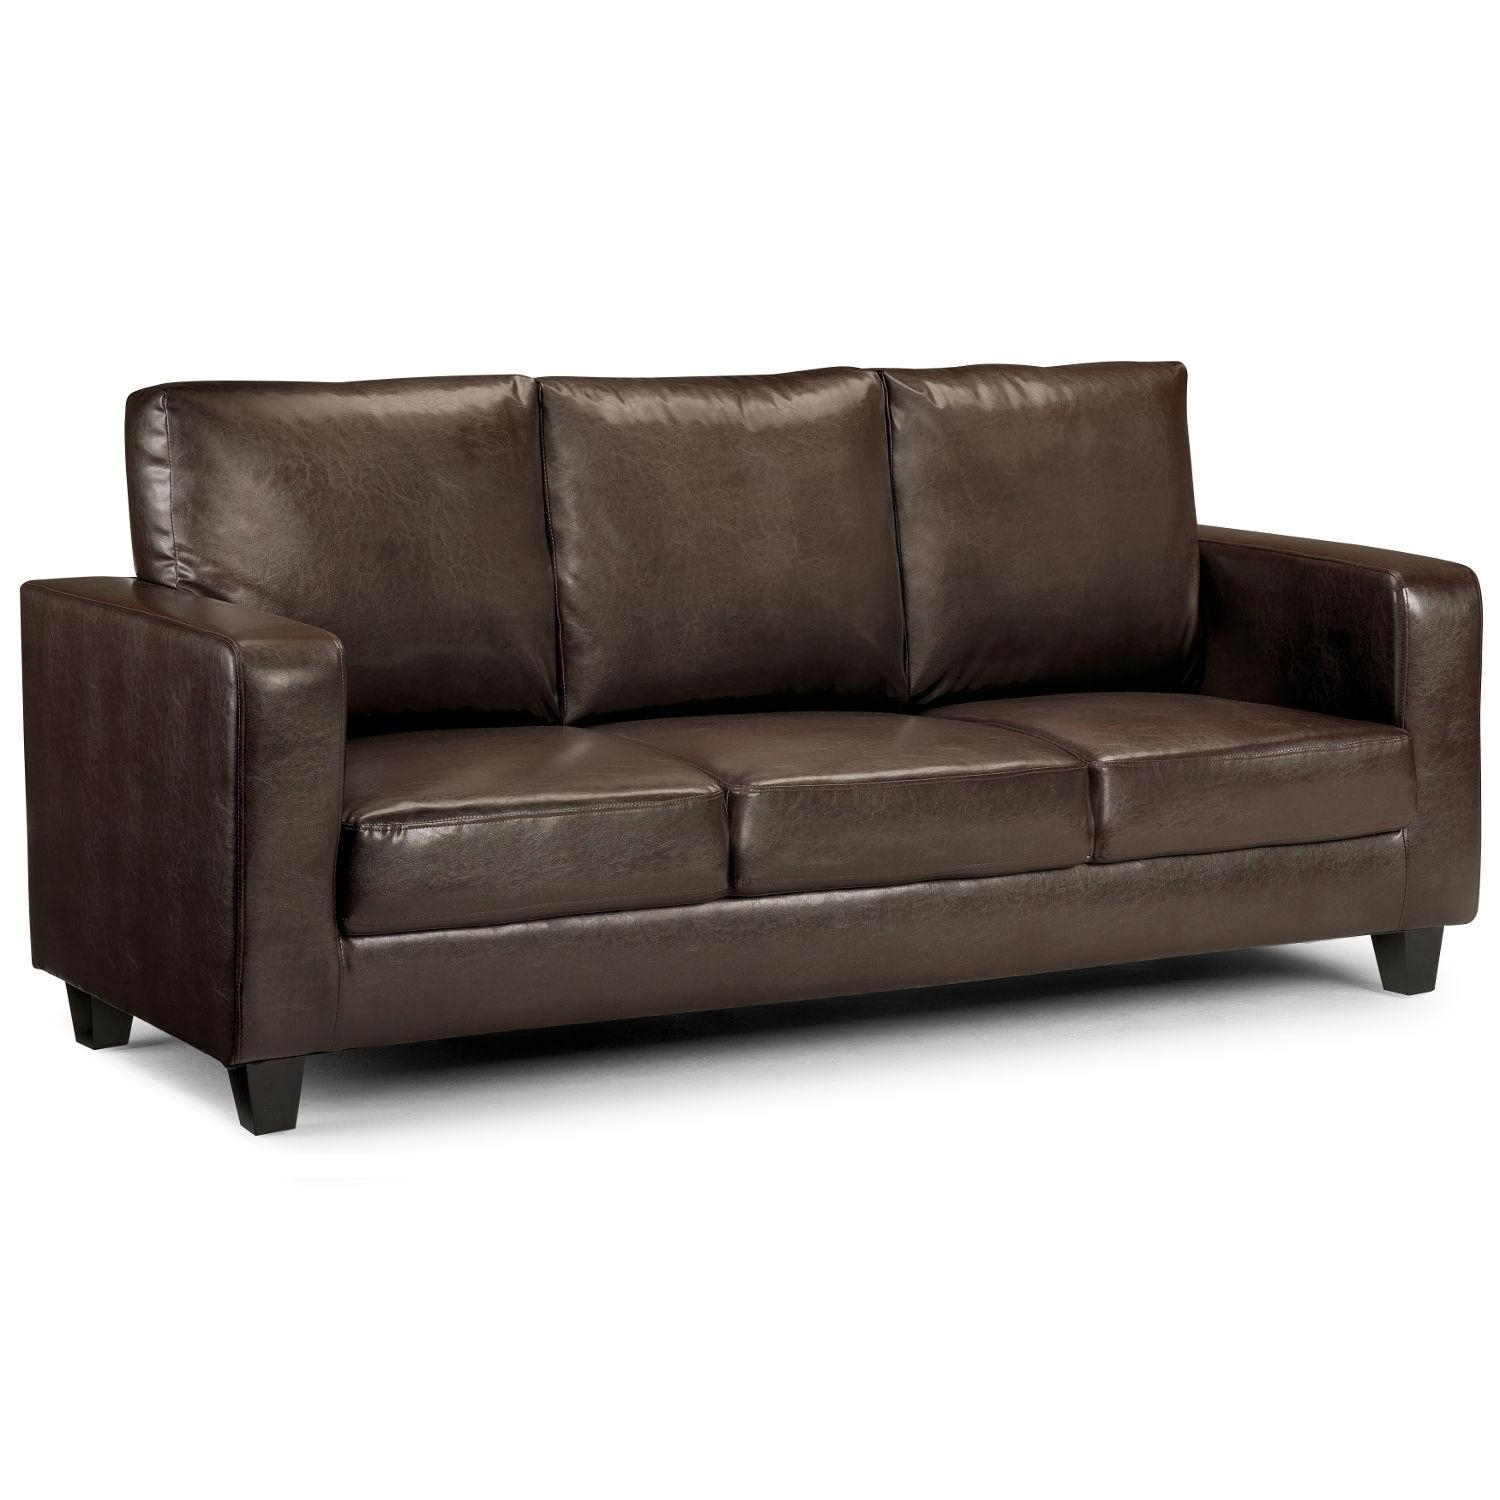 Matthew 3 Seater Faux Leather Sofa – Next Day Delivery Matthew 3 With 3 Seater Leather Sofas (View 8 of 20)